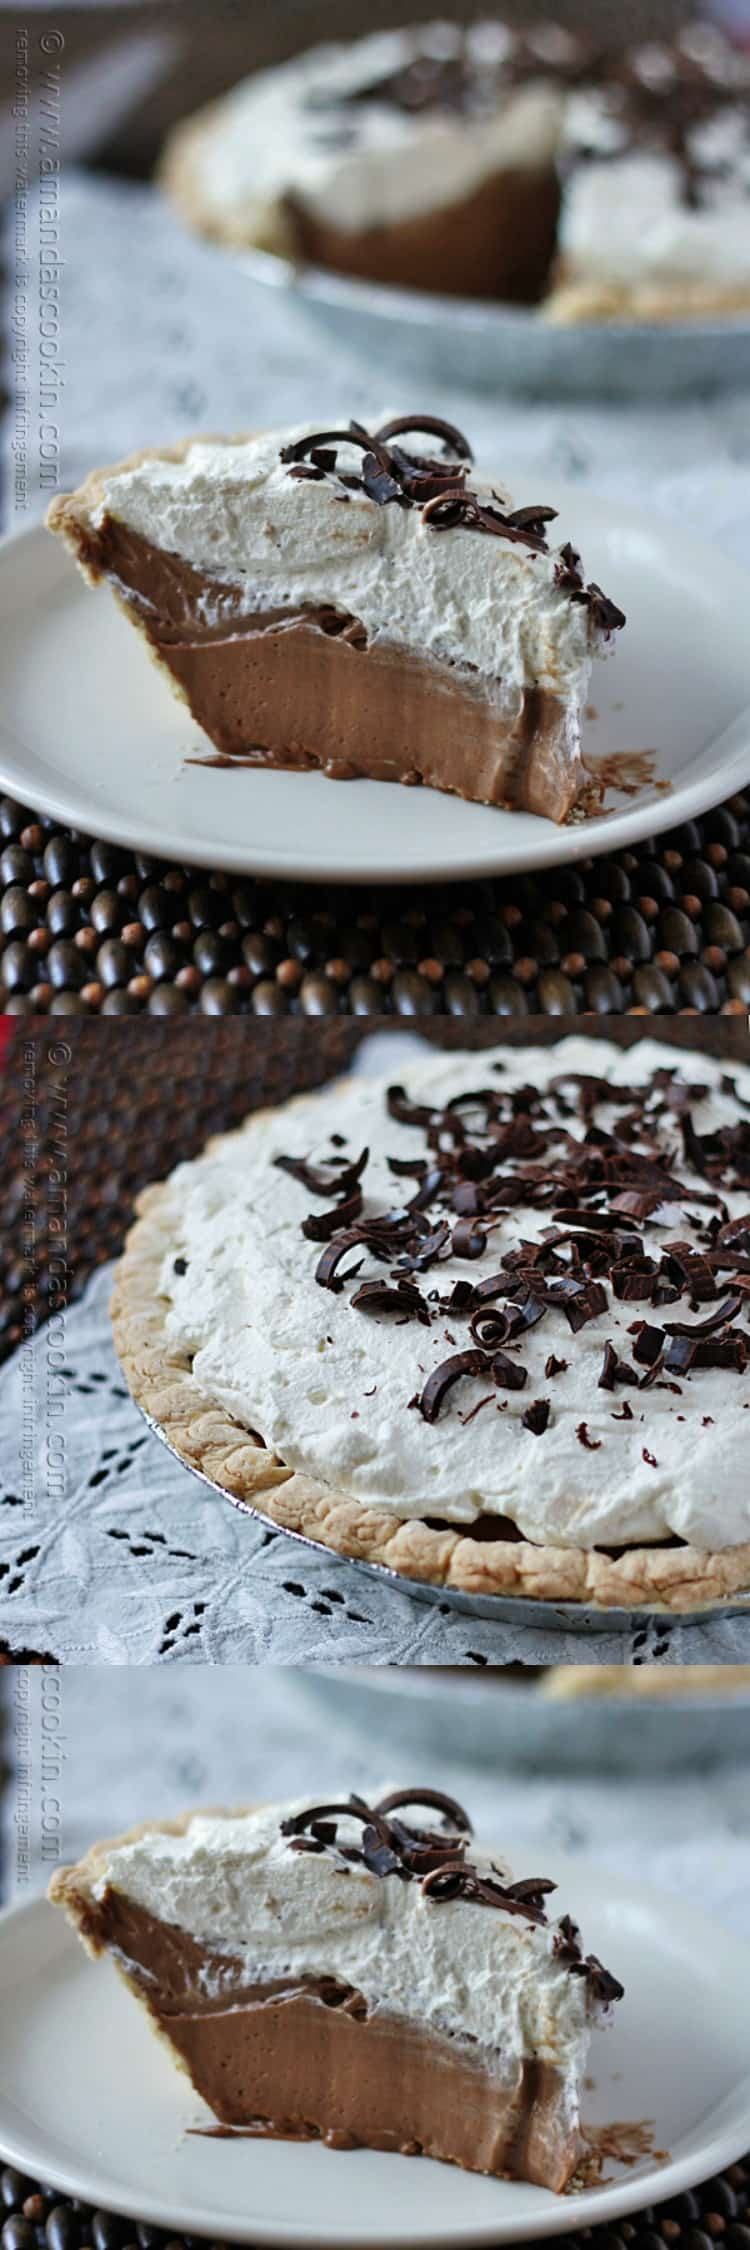 Homemade Baker's Square French Silk Pie